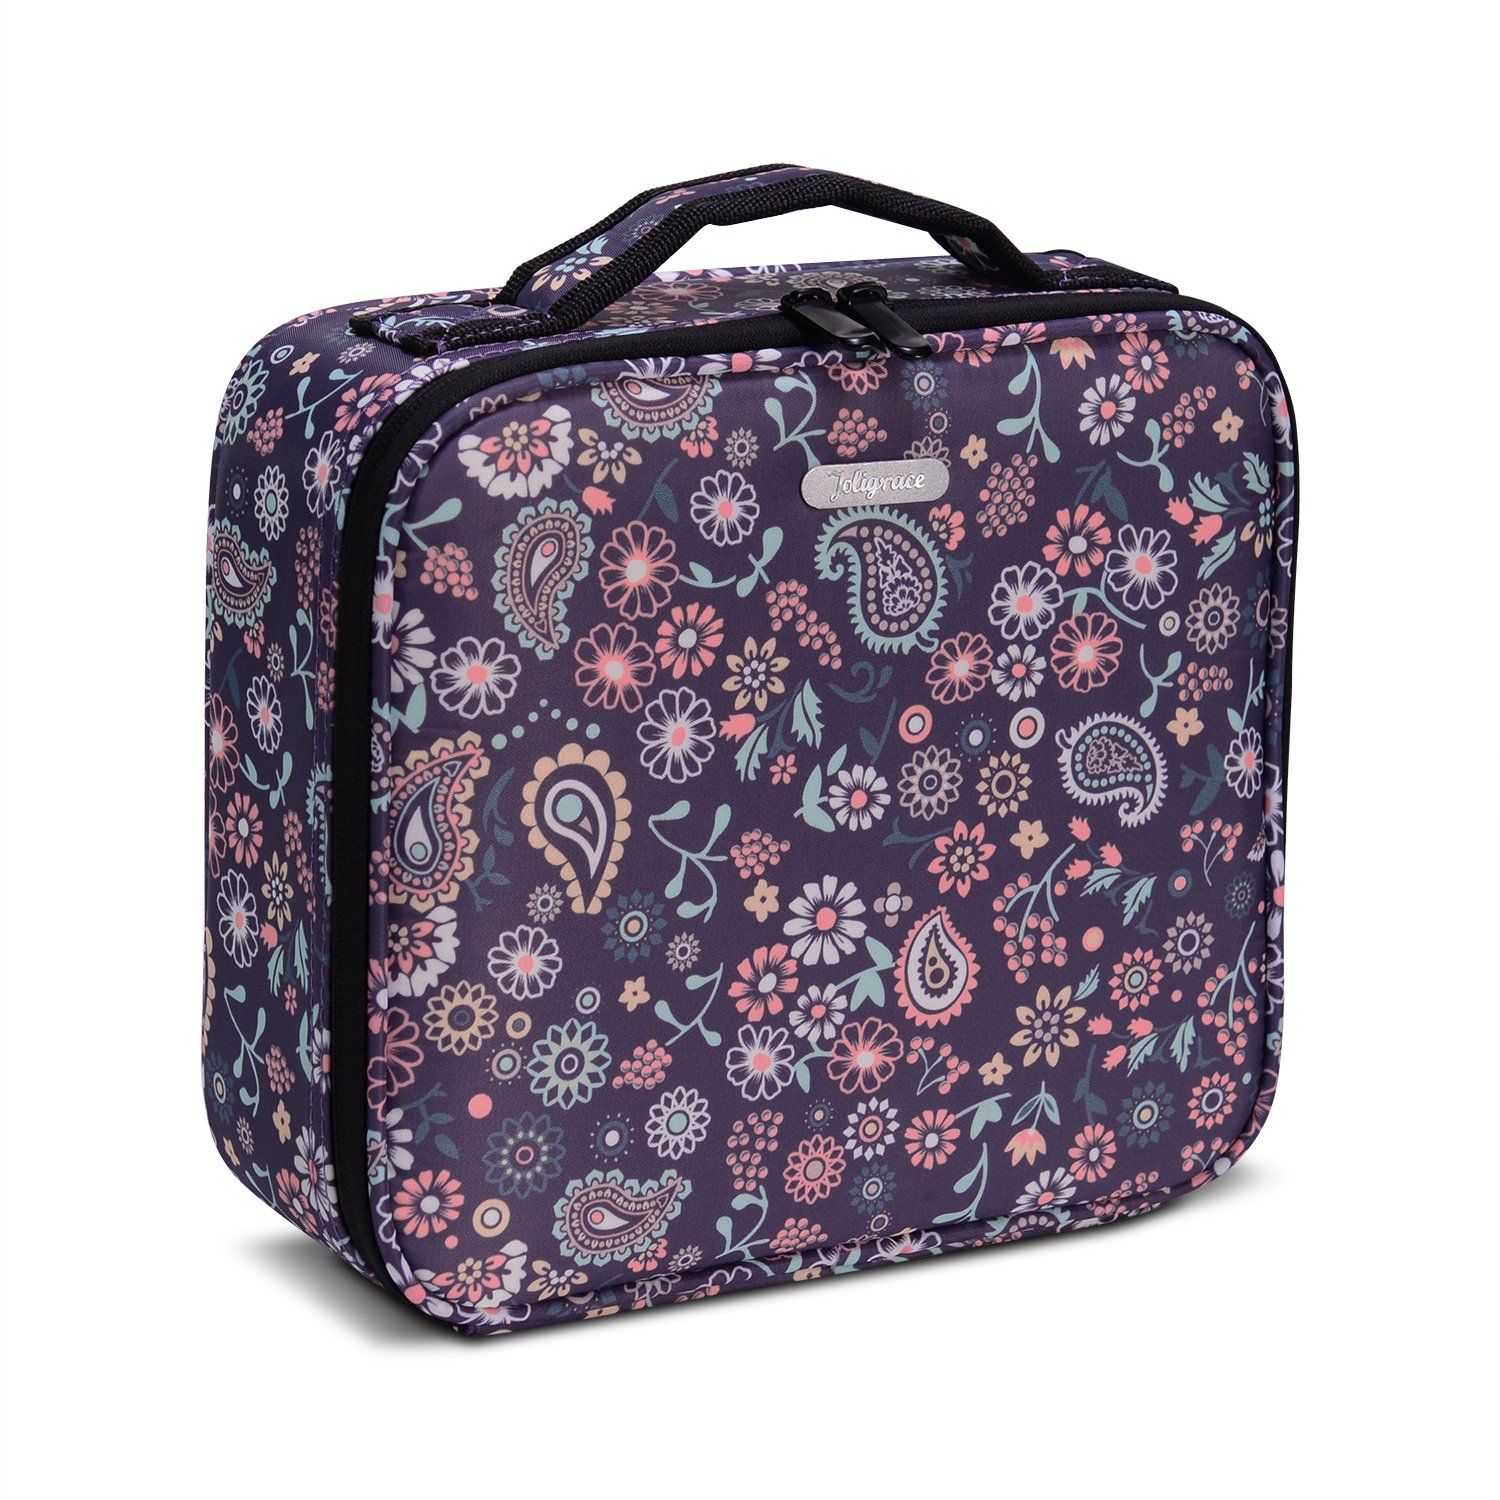 JOLIGRACE Portable Makeup Train Case Travel Size Cosmetic Bag Organizer with Brush Holder Pockets and Removable Dividers for Makeup Artist (Purple Floral)